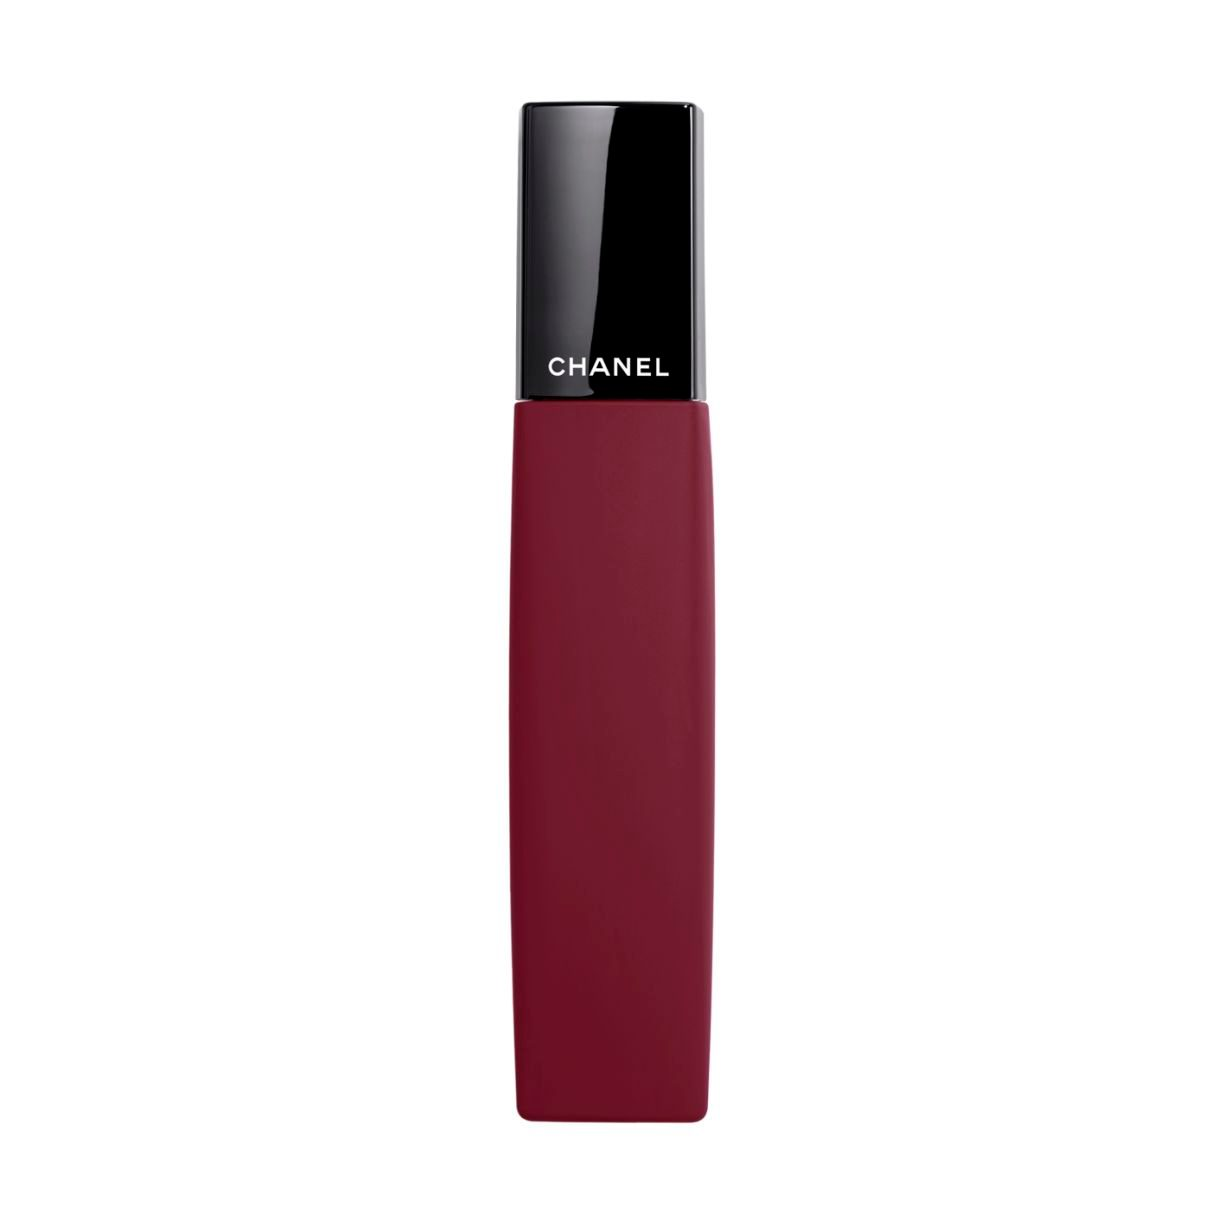 ROUGE ALLURE LIQUID POWDER LA BARRA DE LABIOS MATE EFECTO EMPOLVADO 966 - CRANBERRY RED